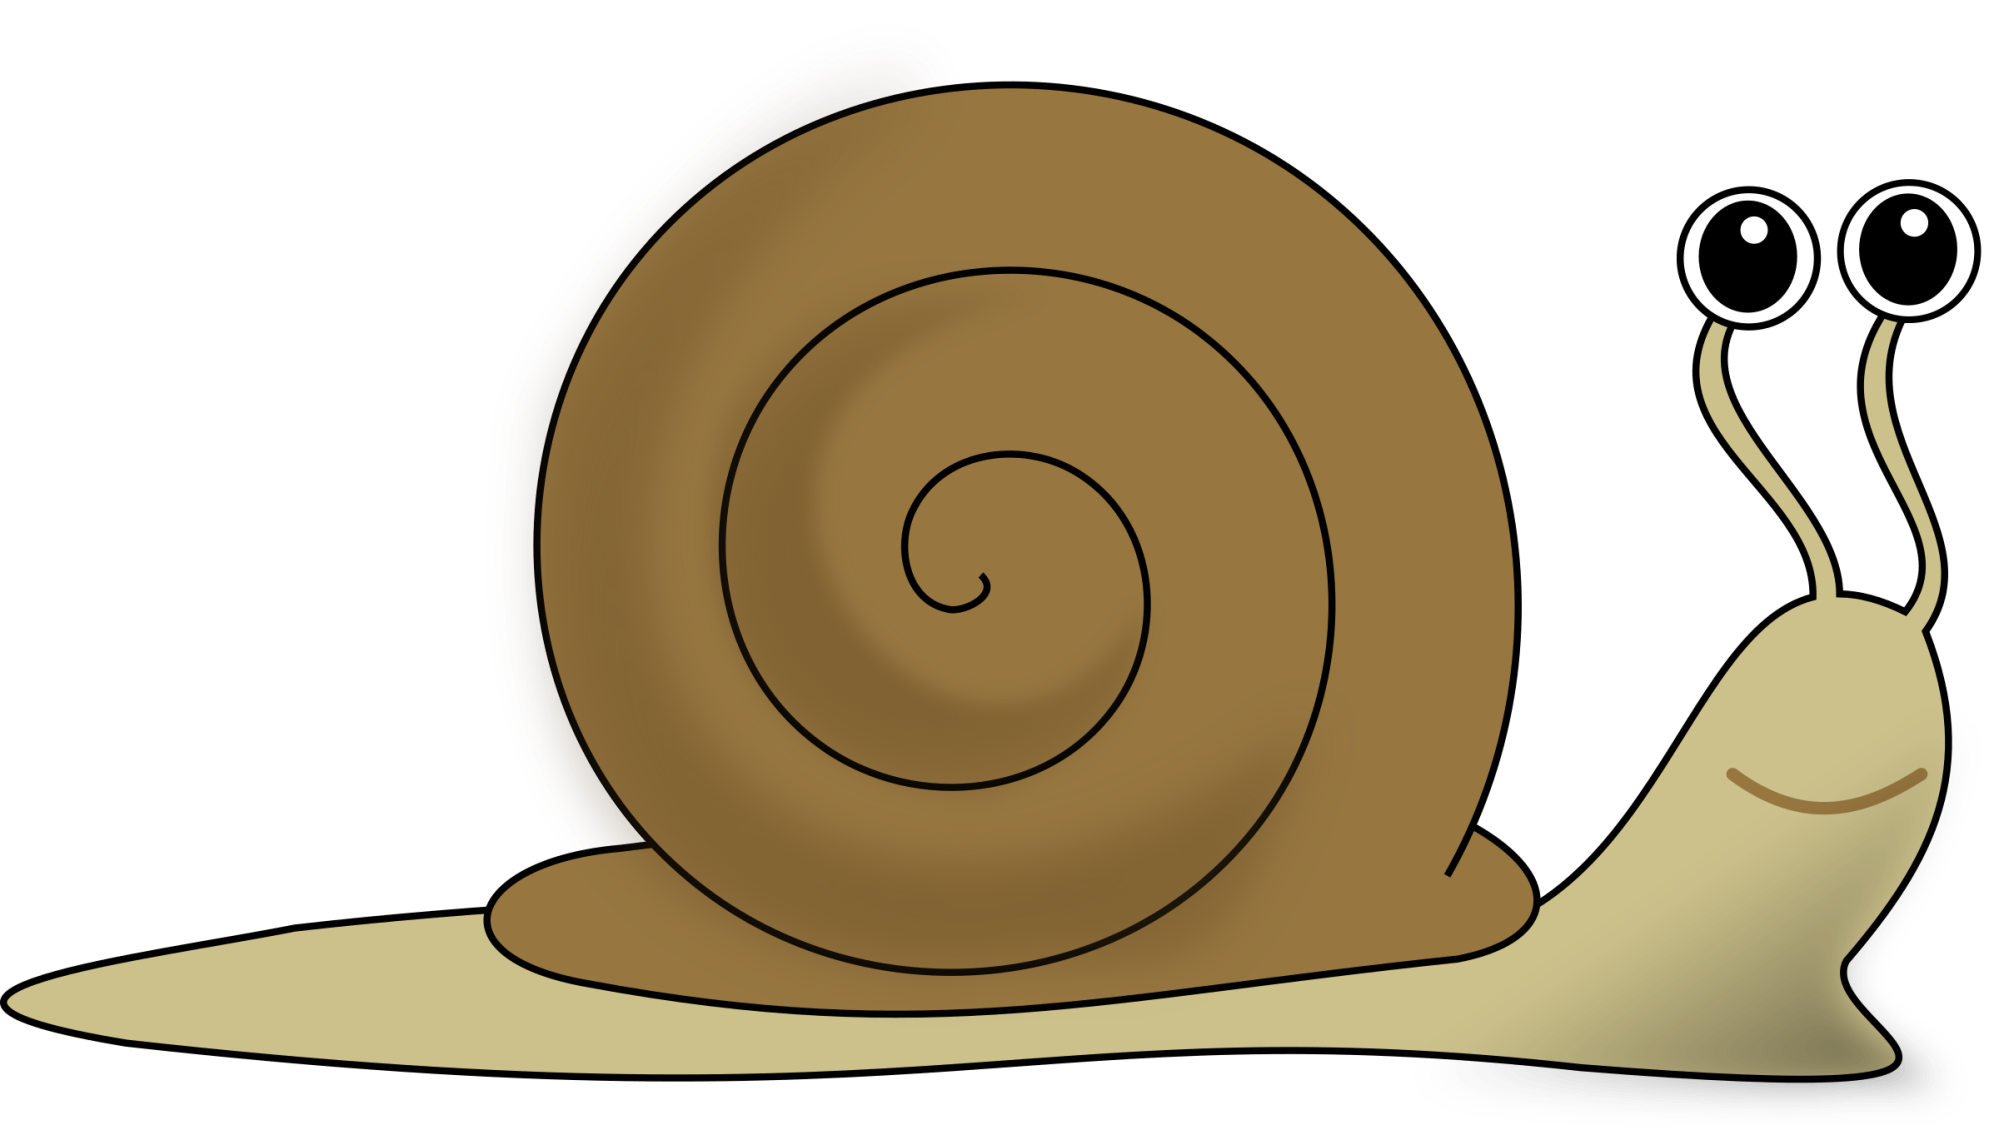 hight resolution of free snail cliparts 2 image